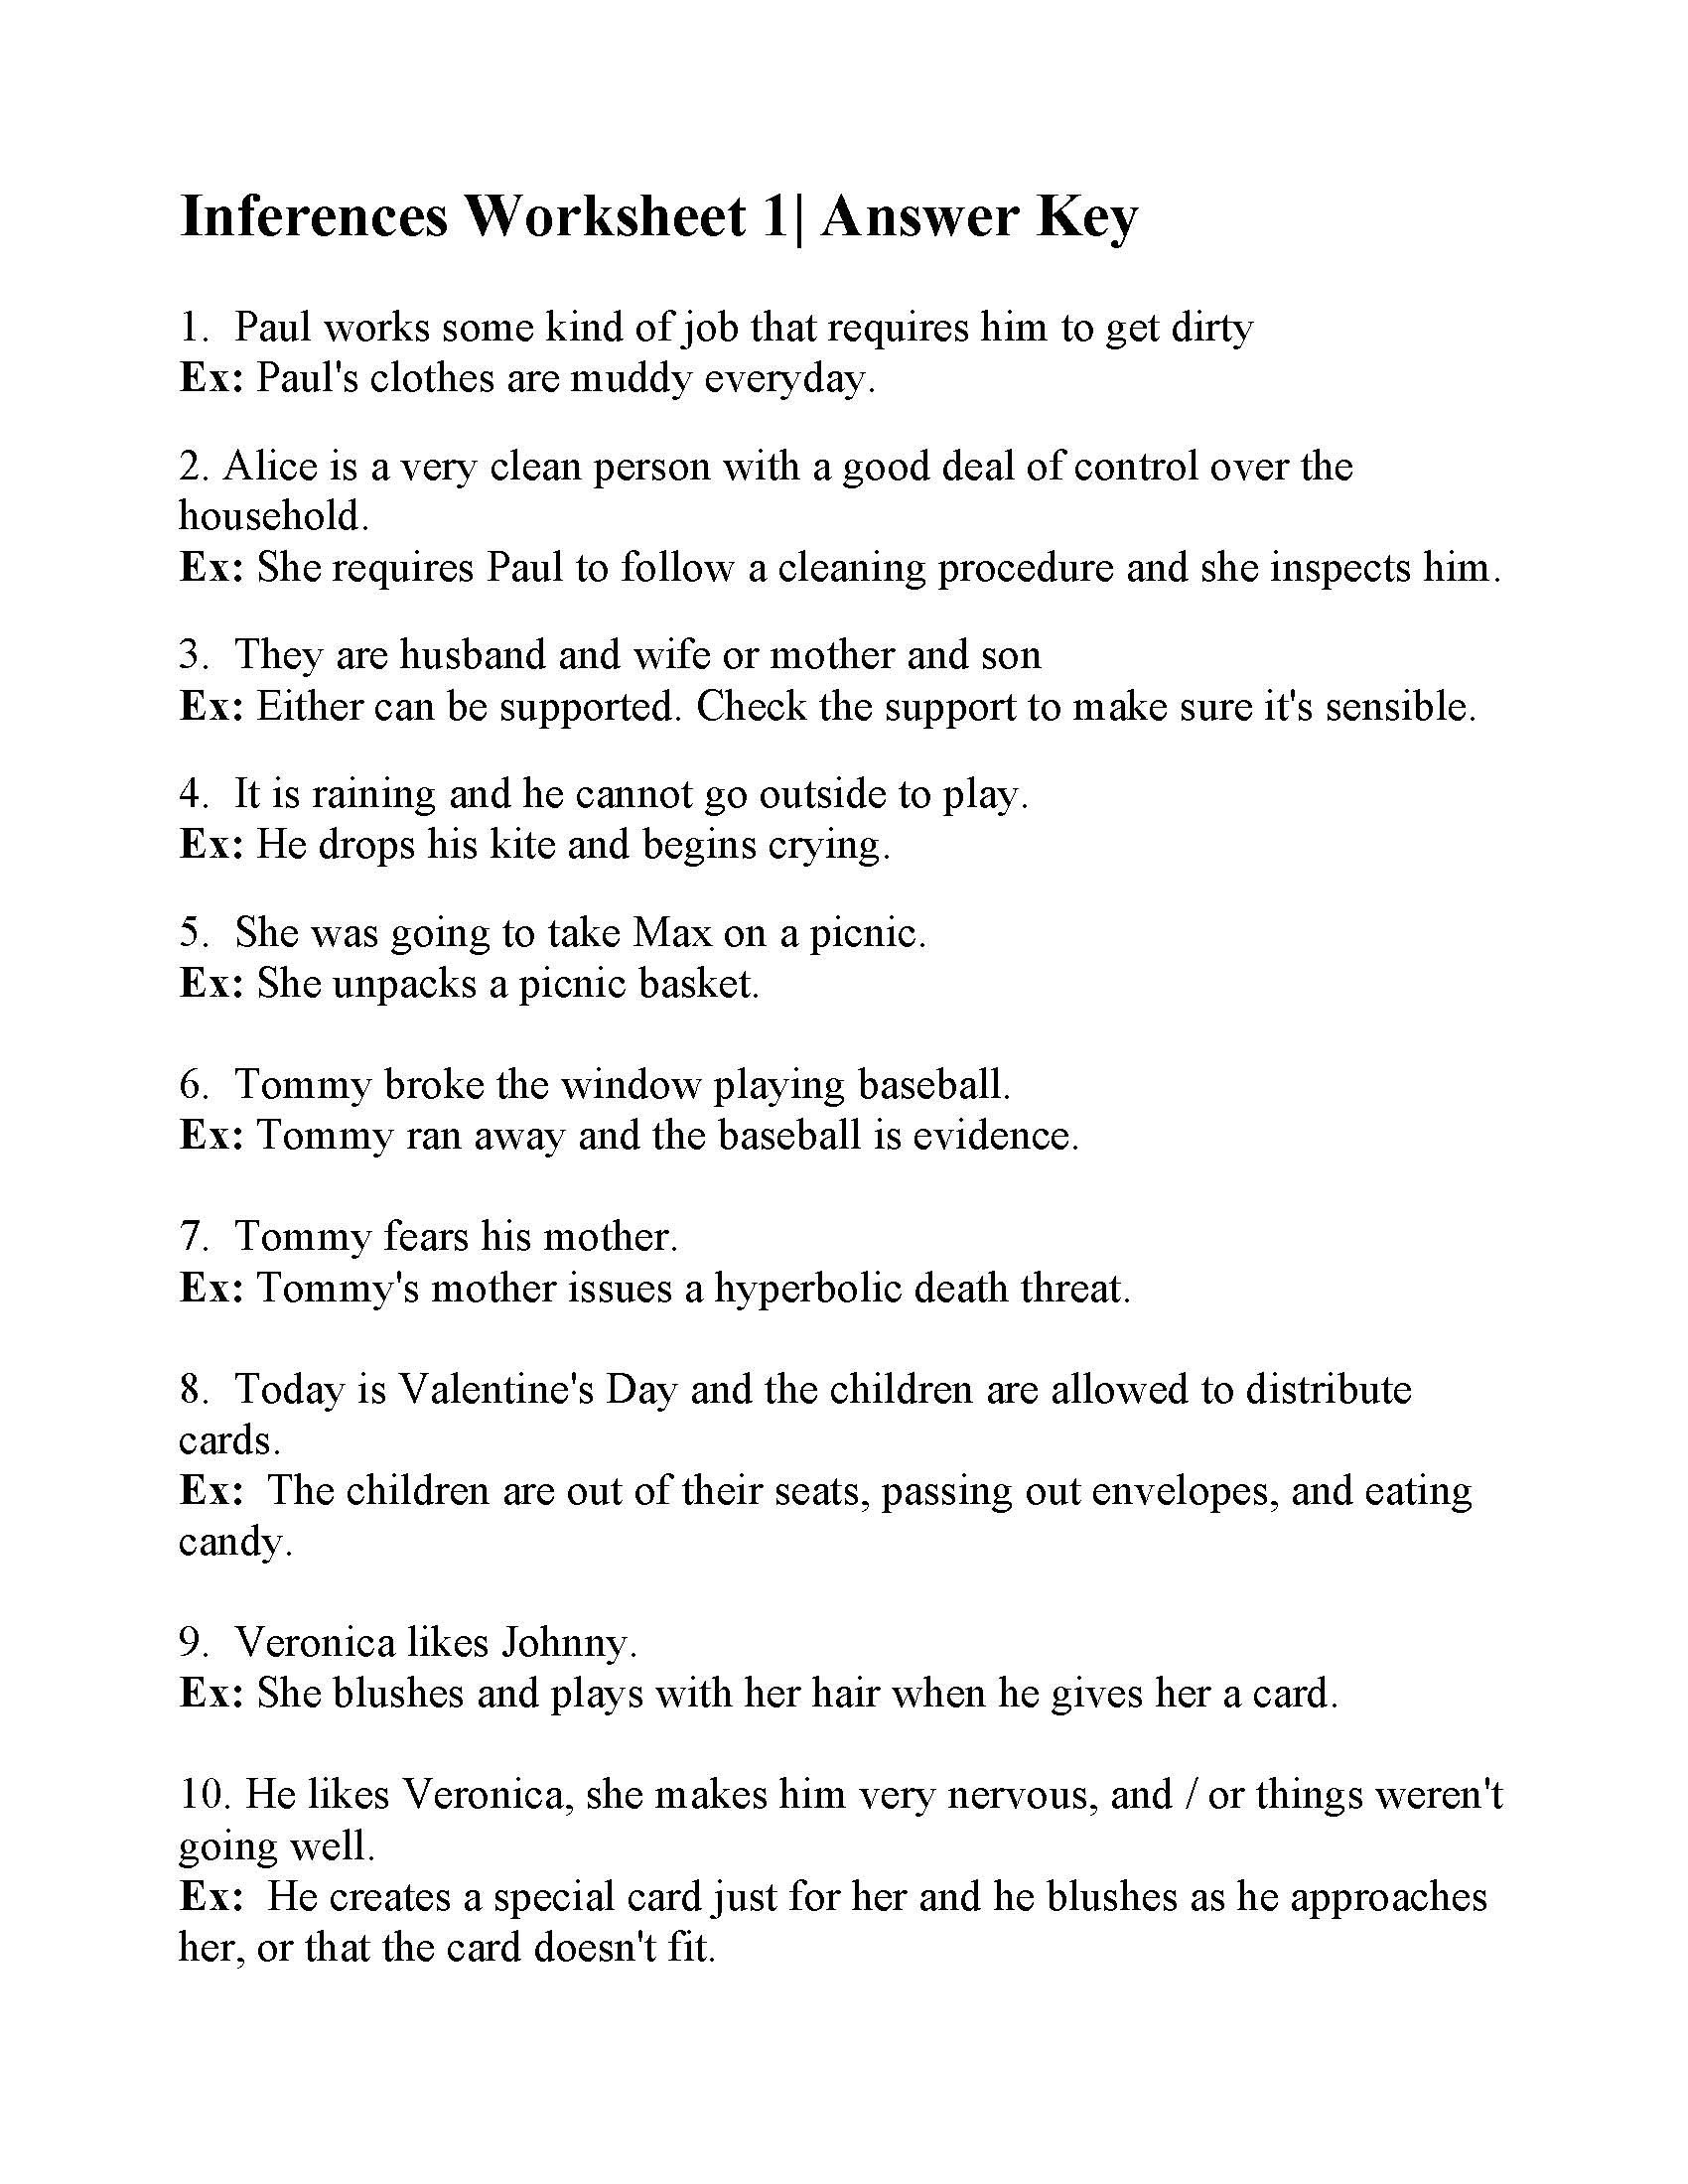 4th Grade Inferencing Worksheets Inferences Worksheet Answers Practice Making Worksheets My